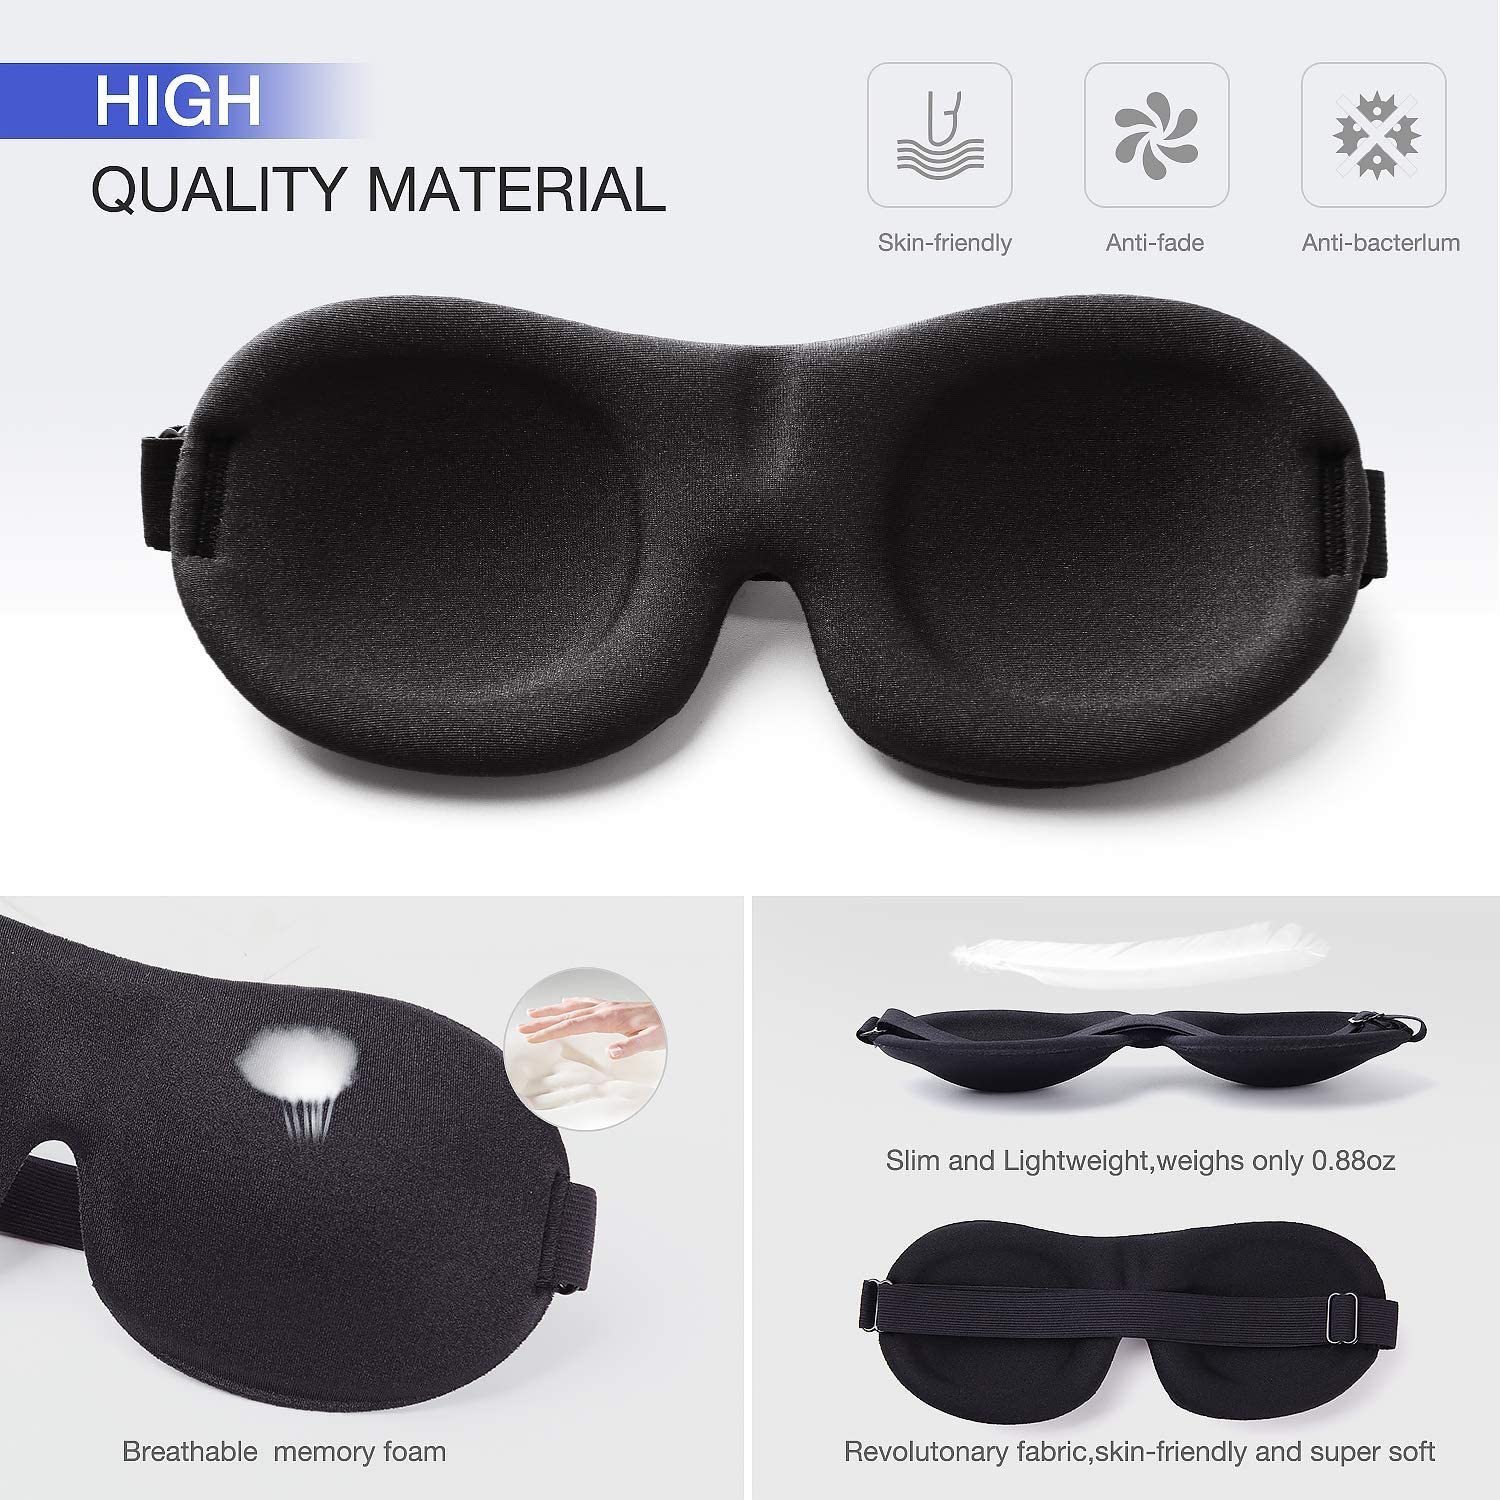 YIVIEW Sleep Mask Pack of 3, Lightweight & Comfortable Super Soft Adjustable 3D Contoured Eye Masks for Sleeping, Travel, Shift Work, Naps, Night Blindfold Eyeshade for Men Women, Gray/Red/Black: Health & Personal Care